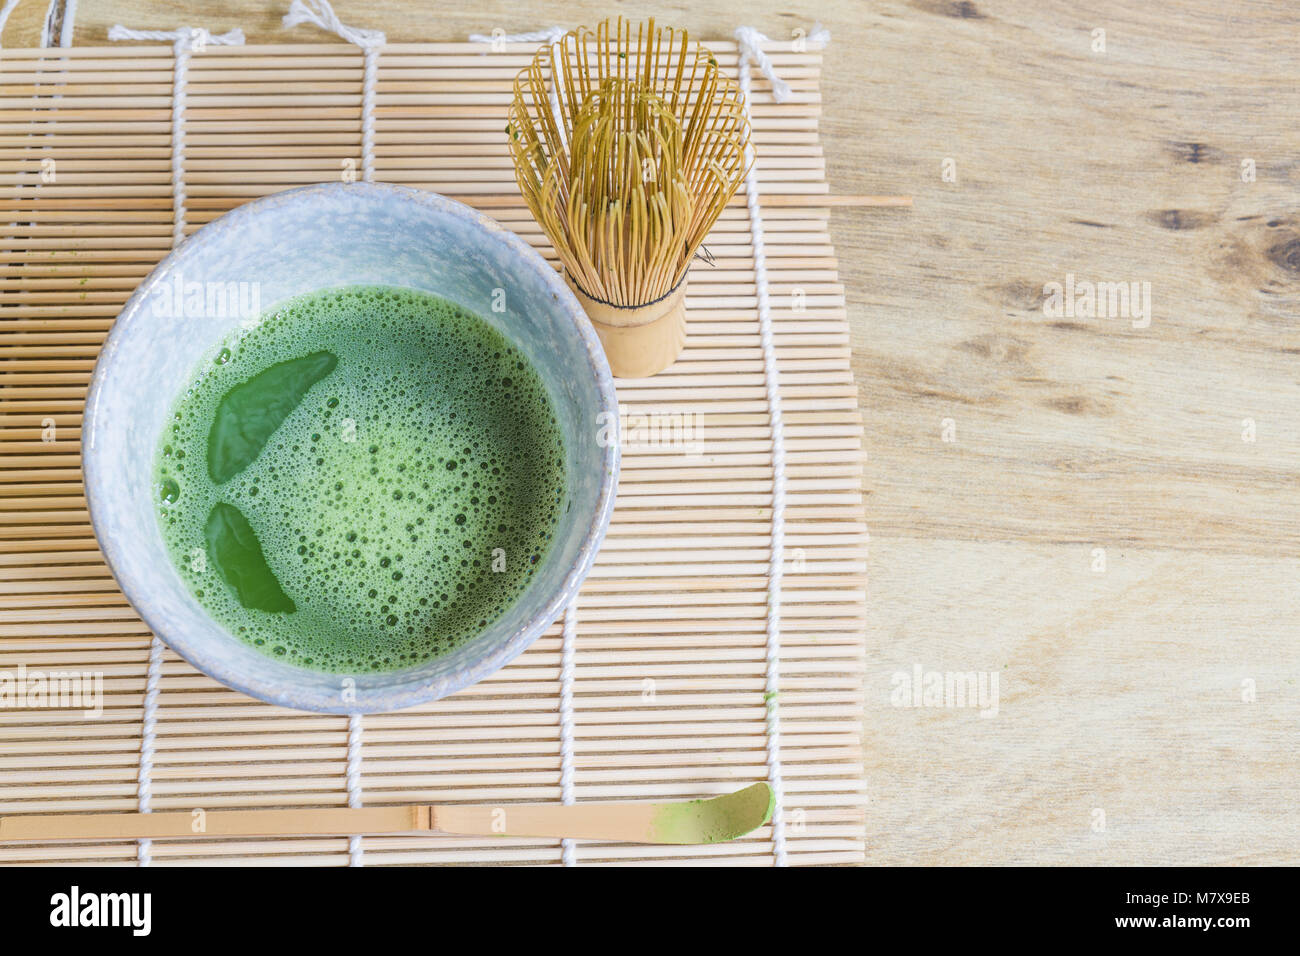 Above view of Japanese tea ceremony elements including a stone bowl of matcha green tea, bamboo whisk and bamboo - Stock Image